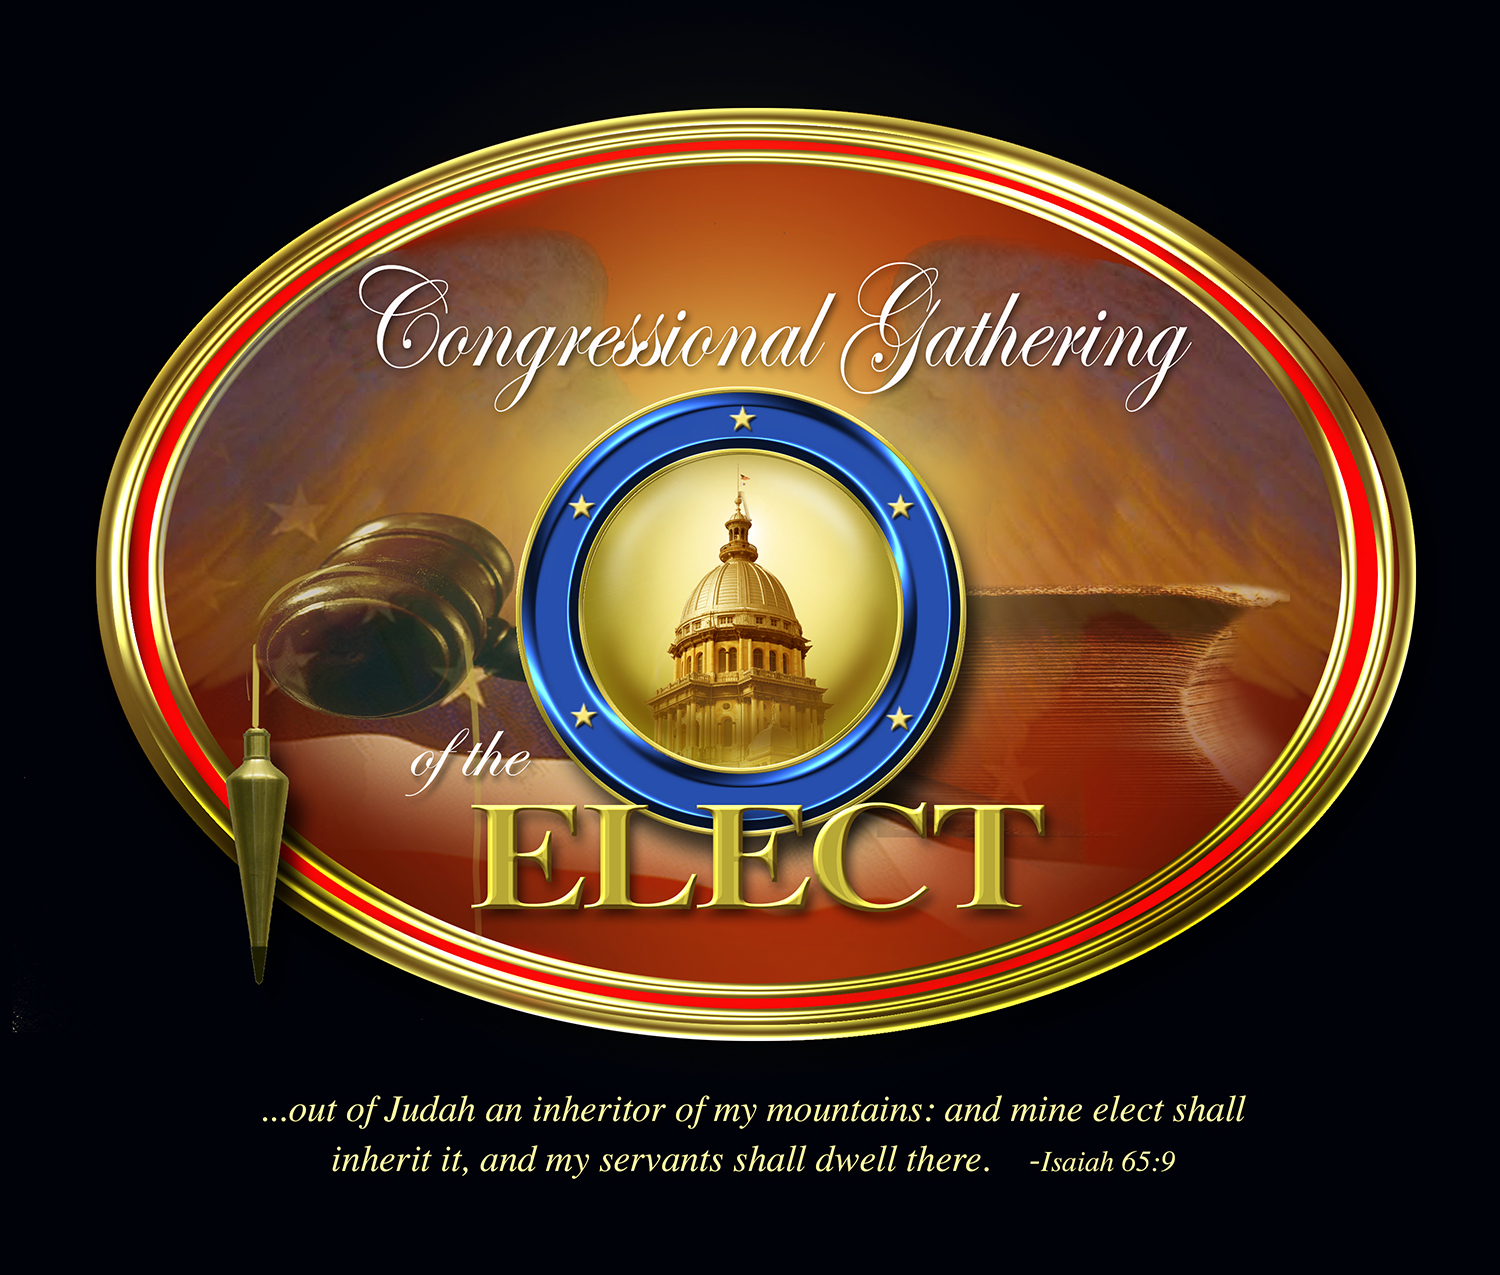 Congressional Gathering of the Elect